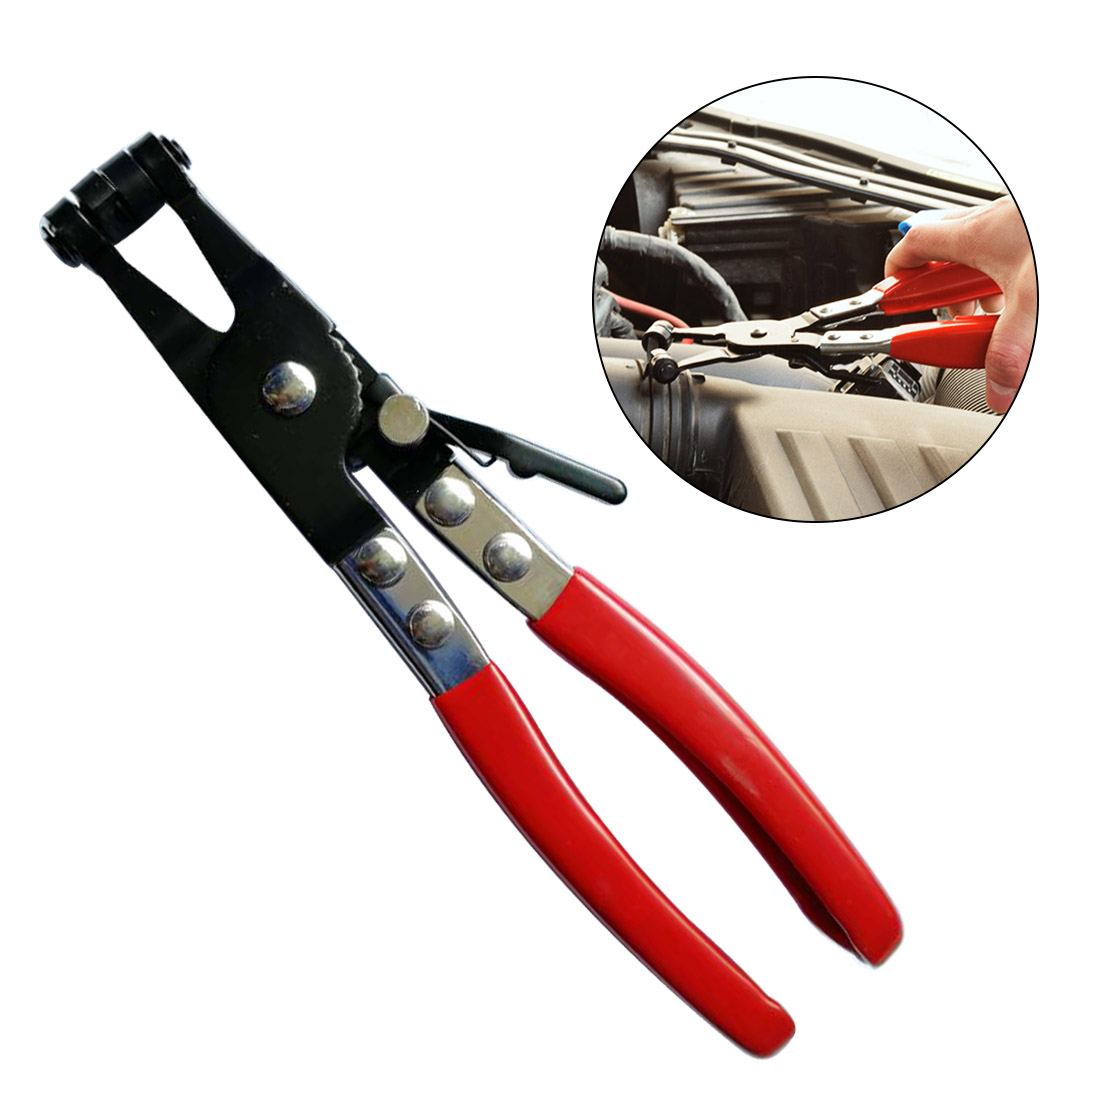 New High Quality Car Water Pipe Hose Removal Tool Flat Band Ring Type Hose Clamp Pliers|Pliers| |  - title=